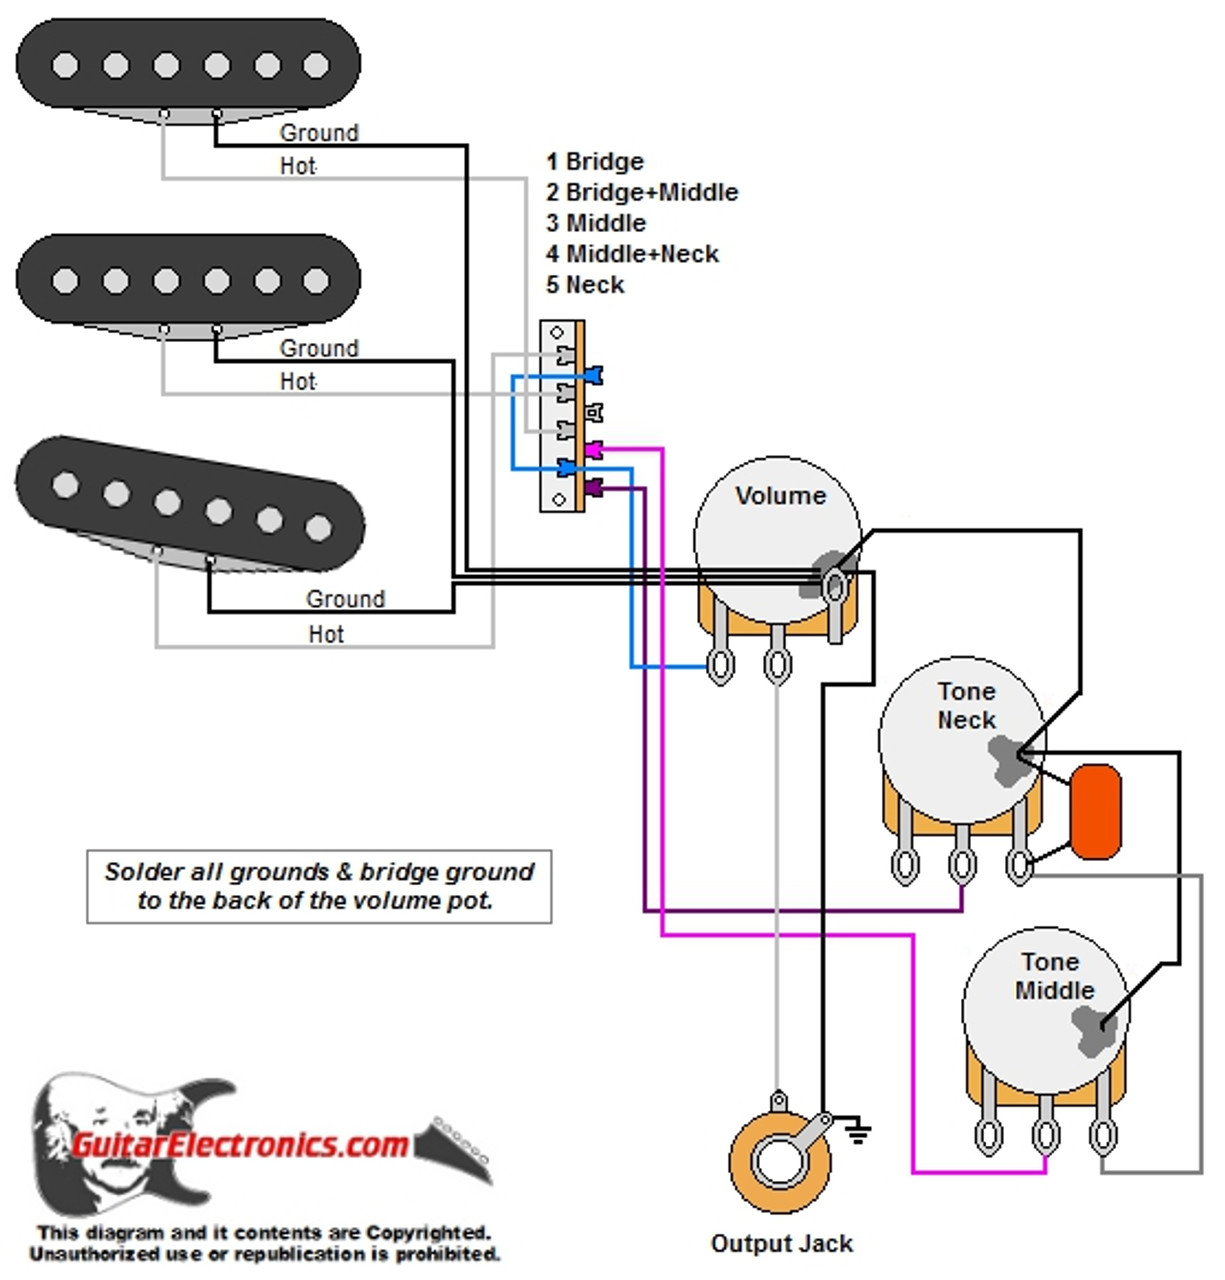 Phenomenal Fender Humbucker Pickup Wiring Diagrams Diagram Data Schema Wiring Digital Resources Indicompassionincorg